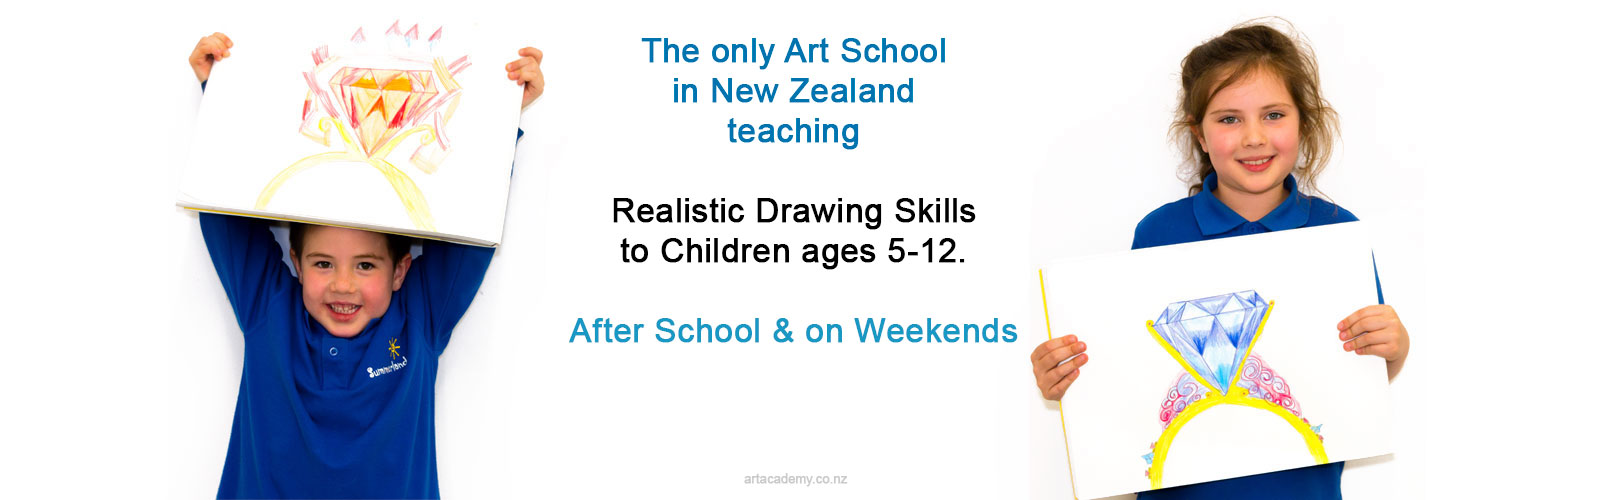 Kids-Art-Classes-Diamond-Drawing-Painting